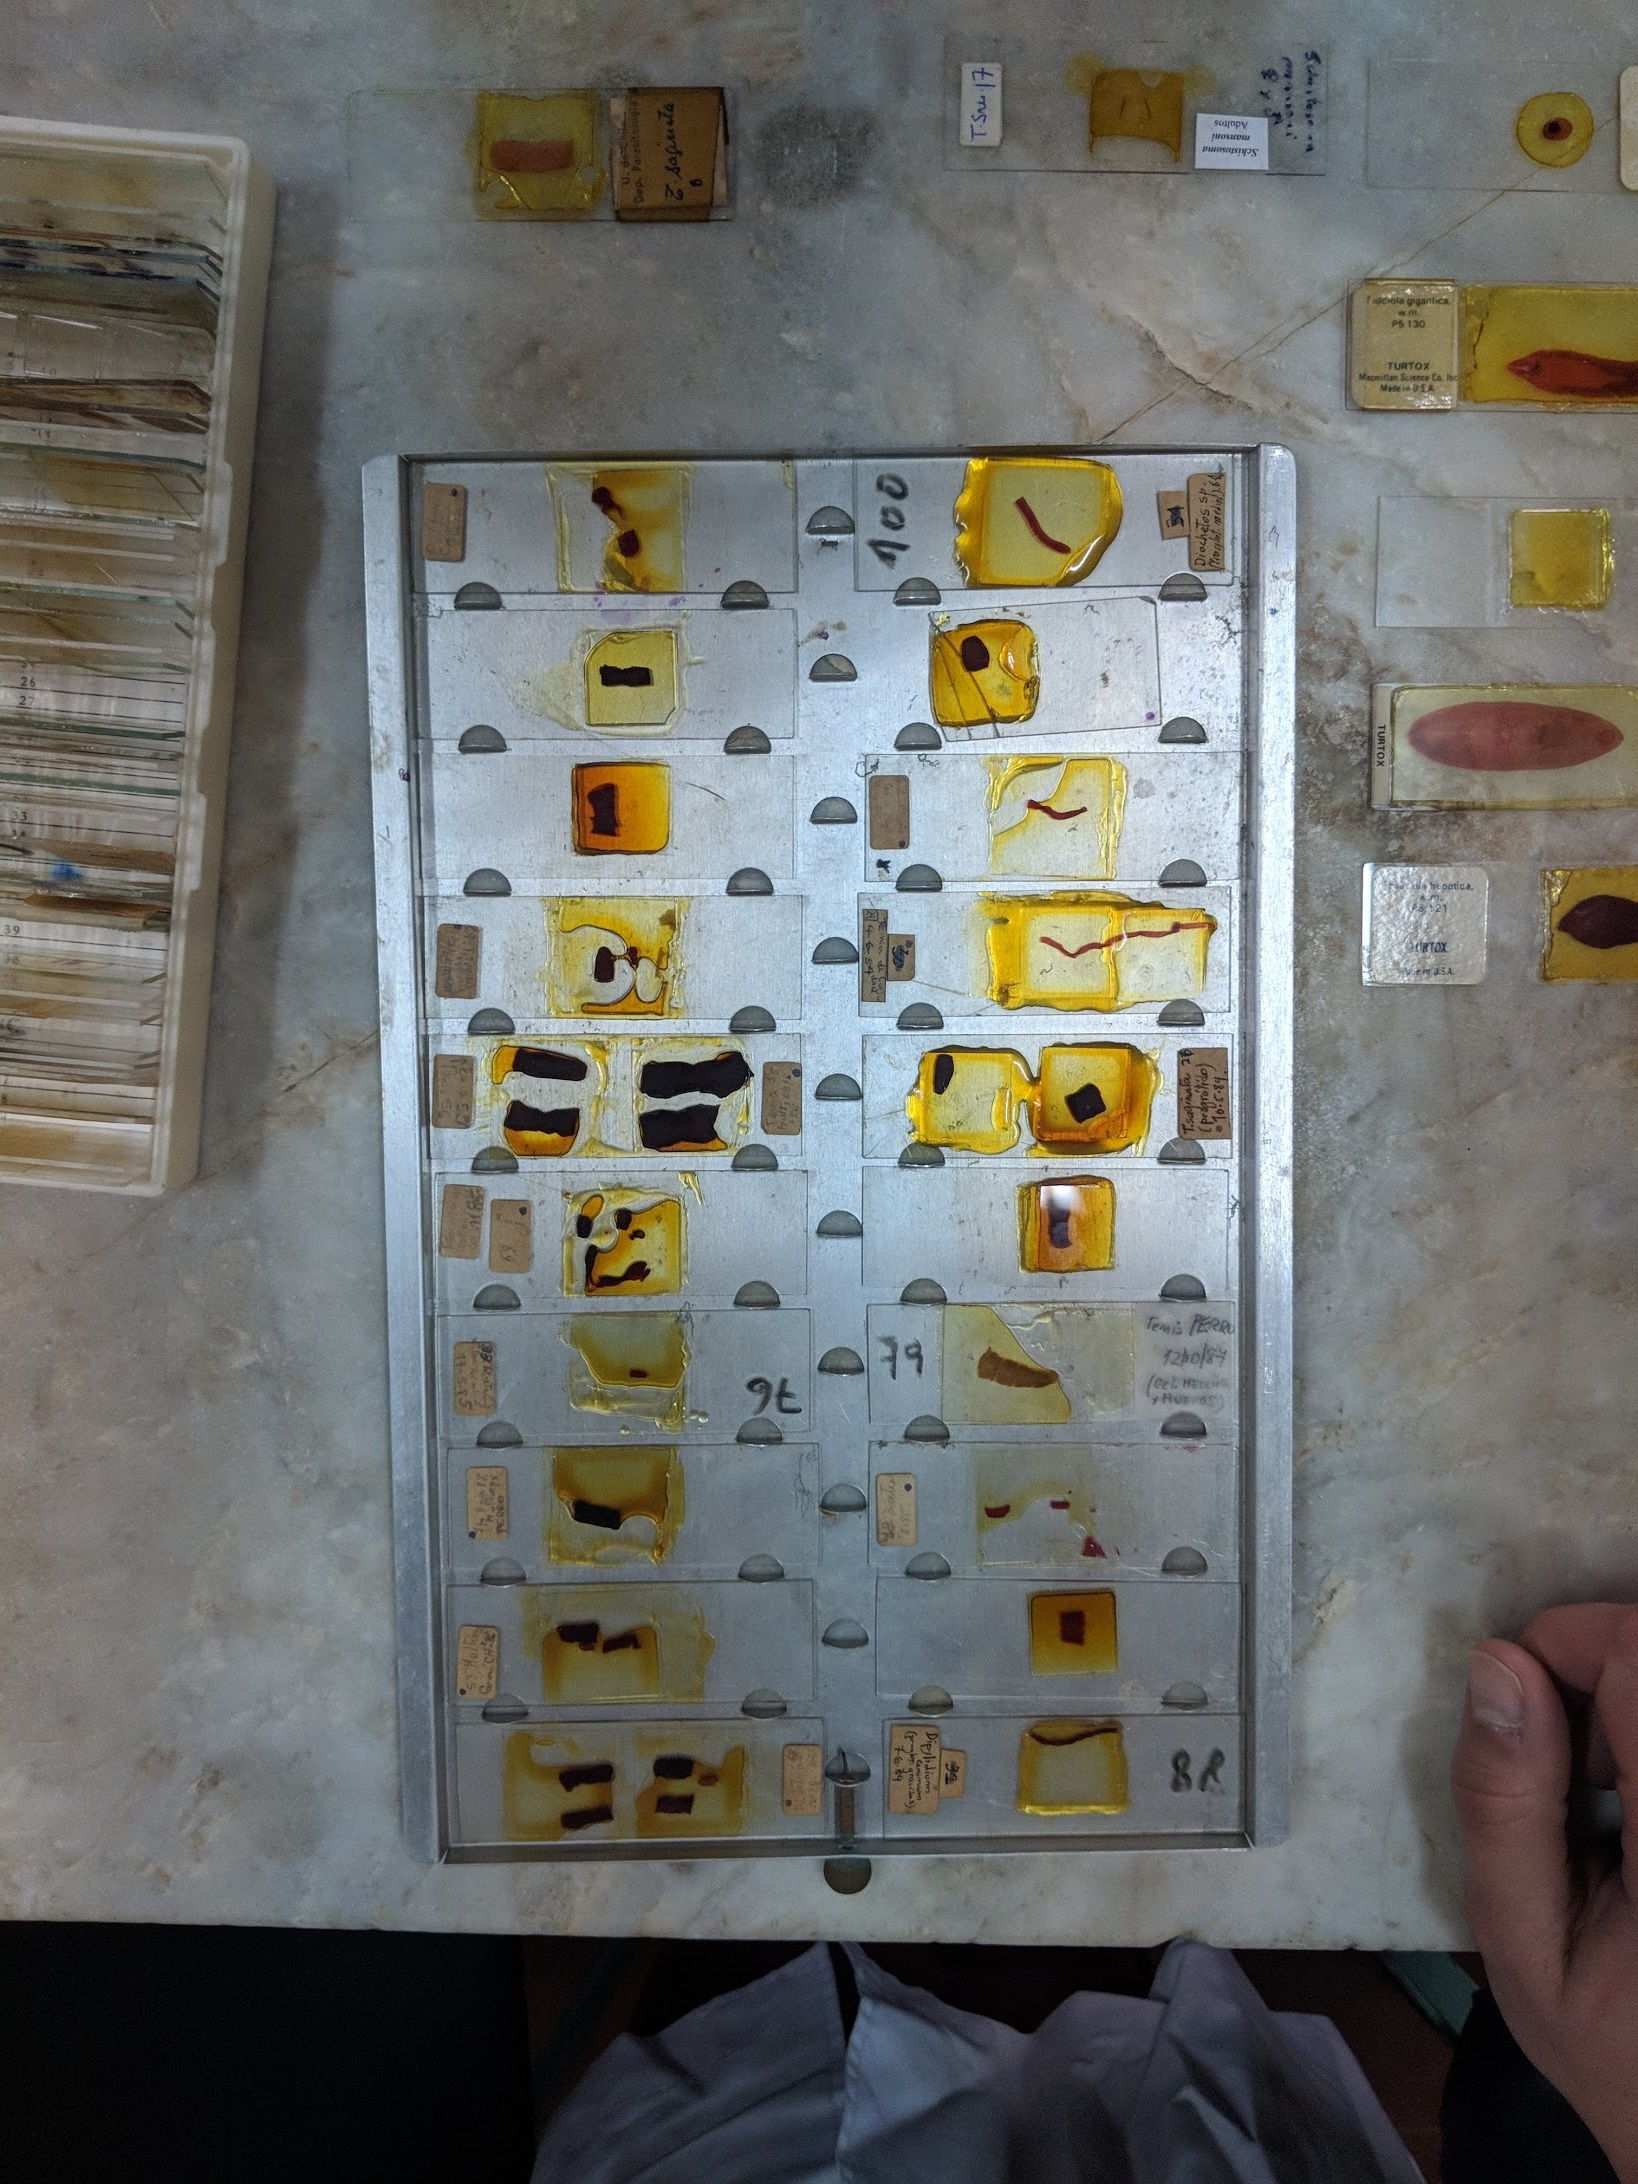 A tray full of parasites mounted to microscope slides.